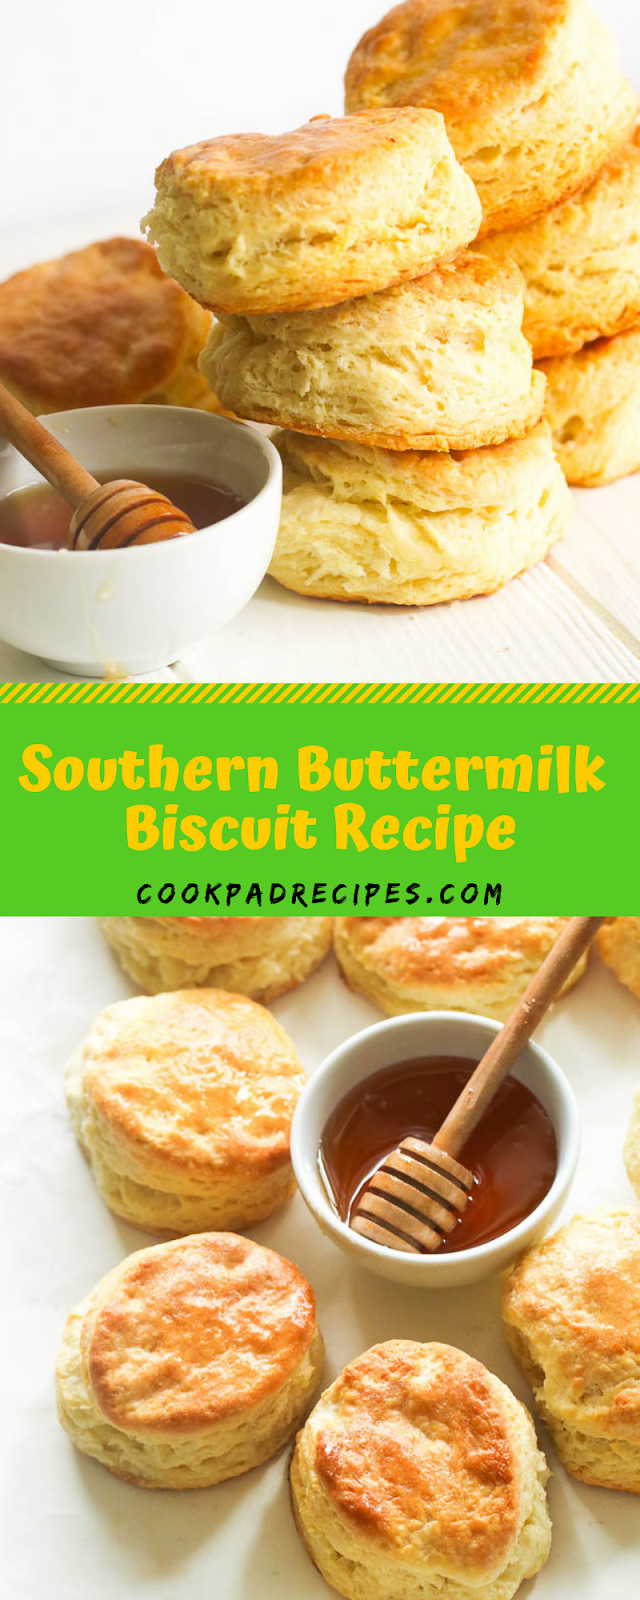 Southern Buttermilk Biscuit Recipe